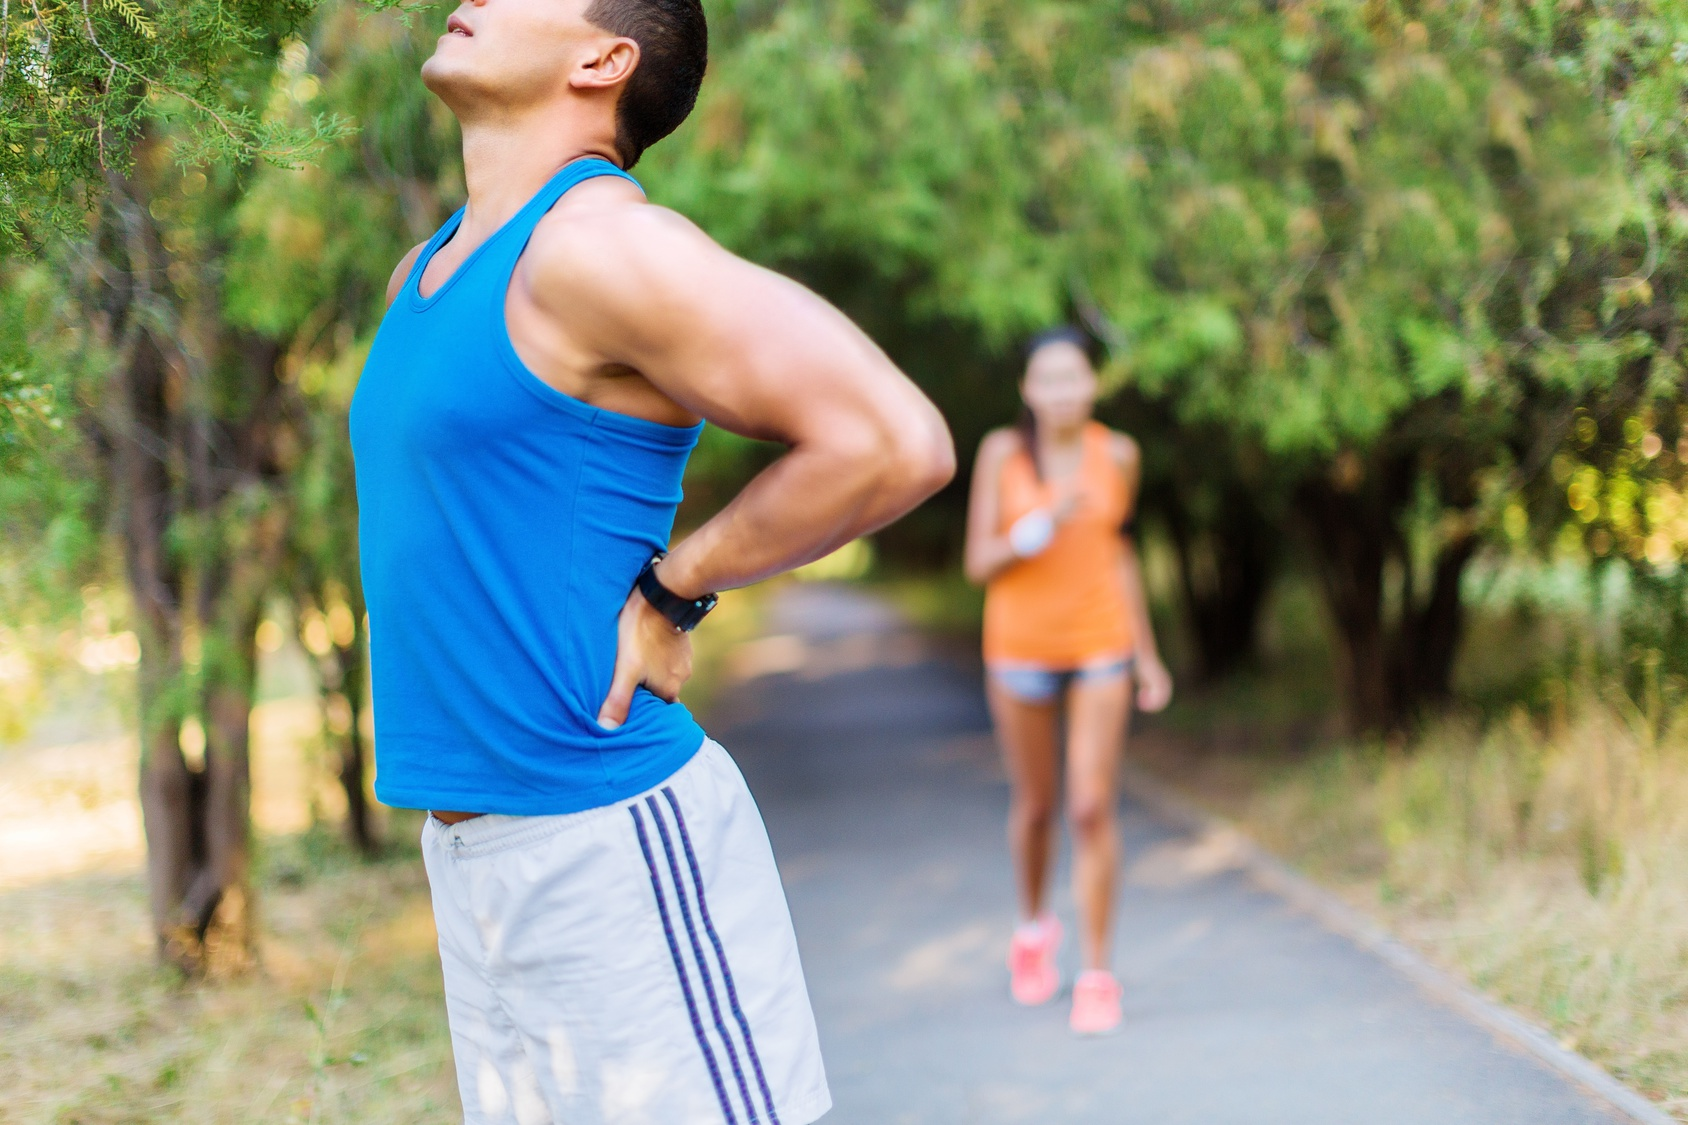 man suffering from Back Pain When Running